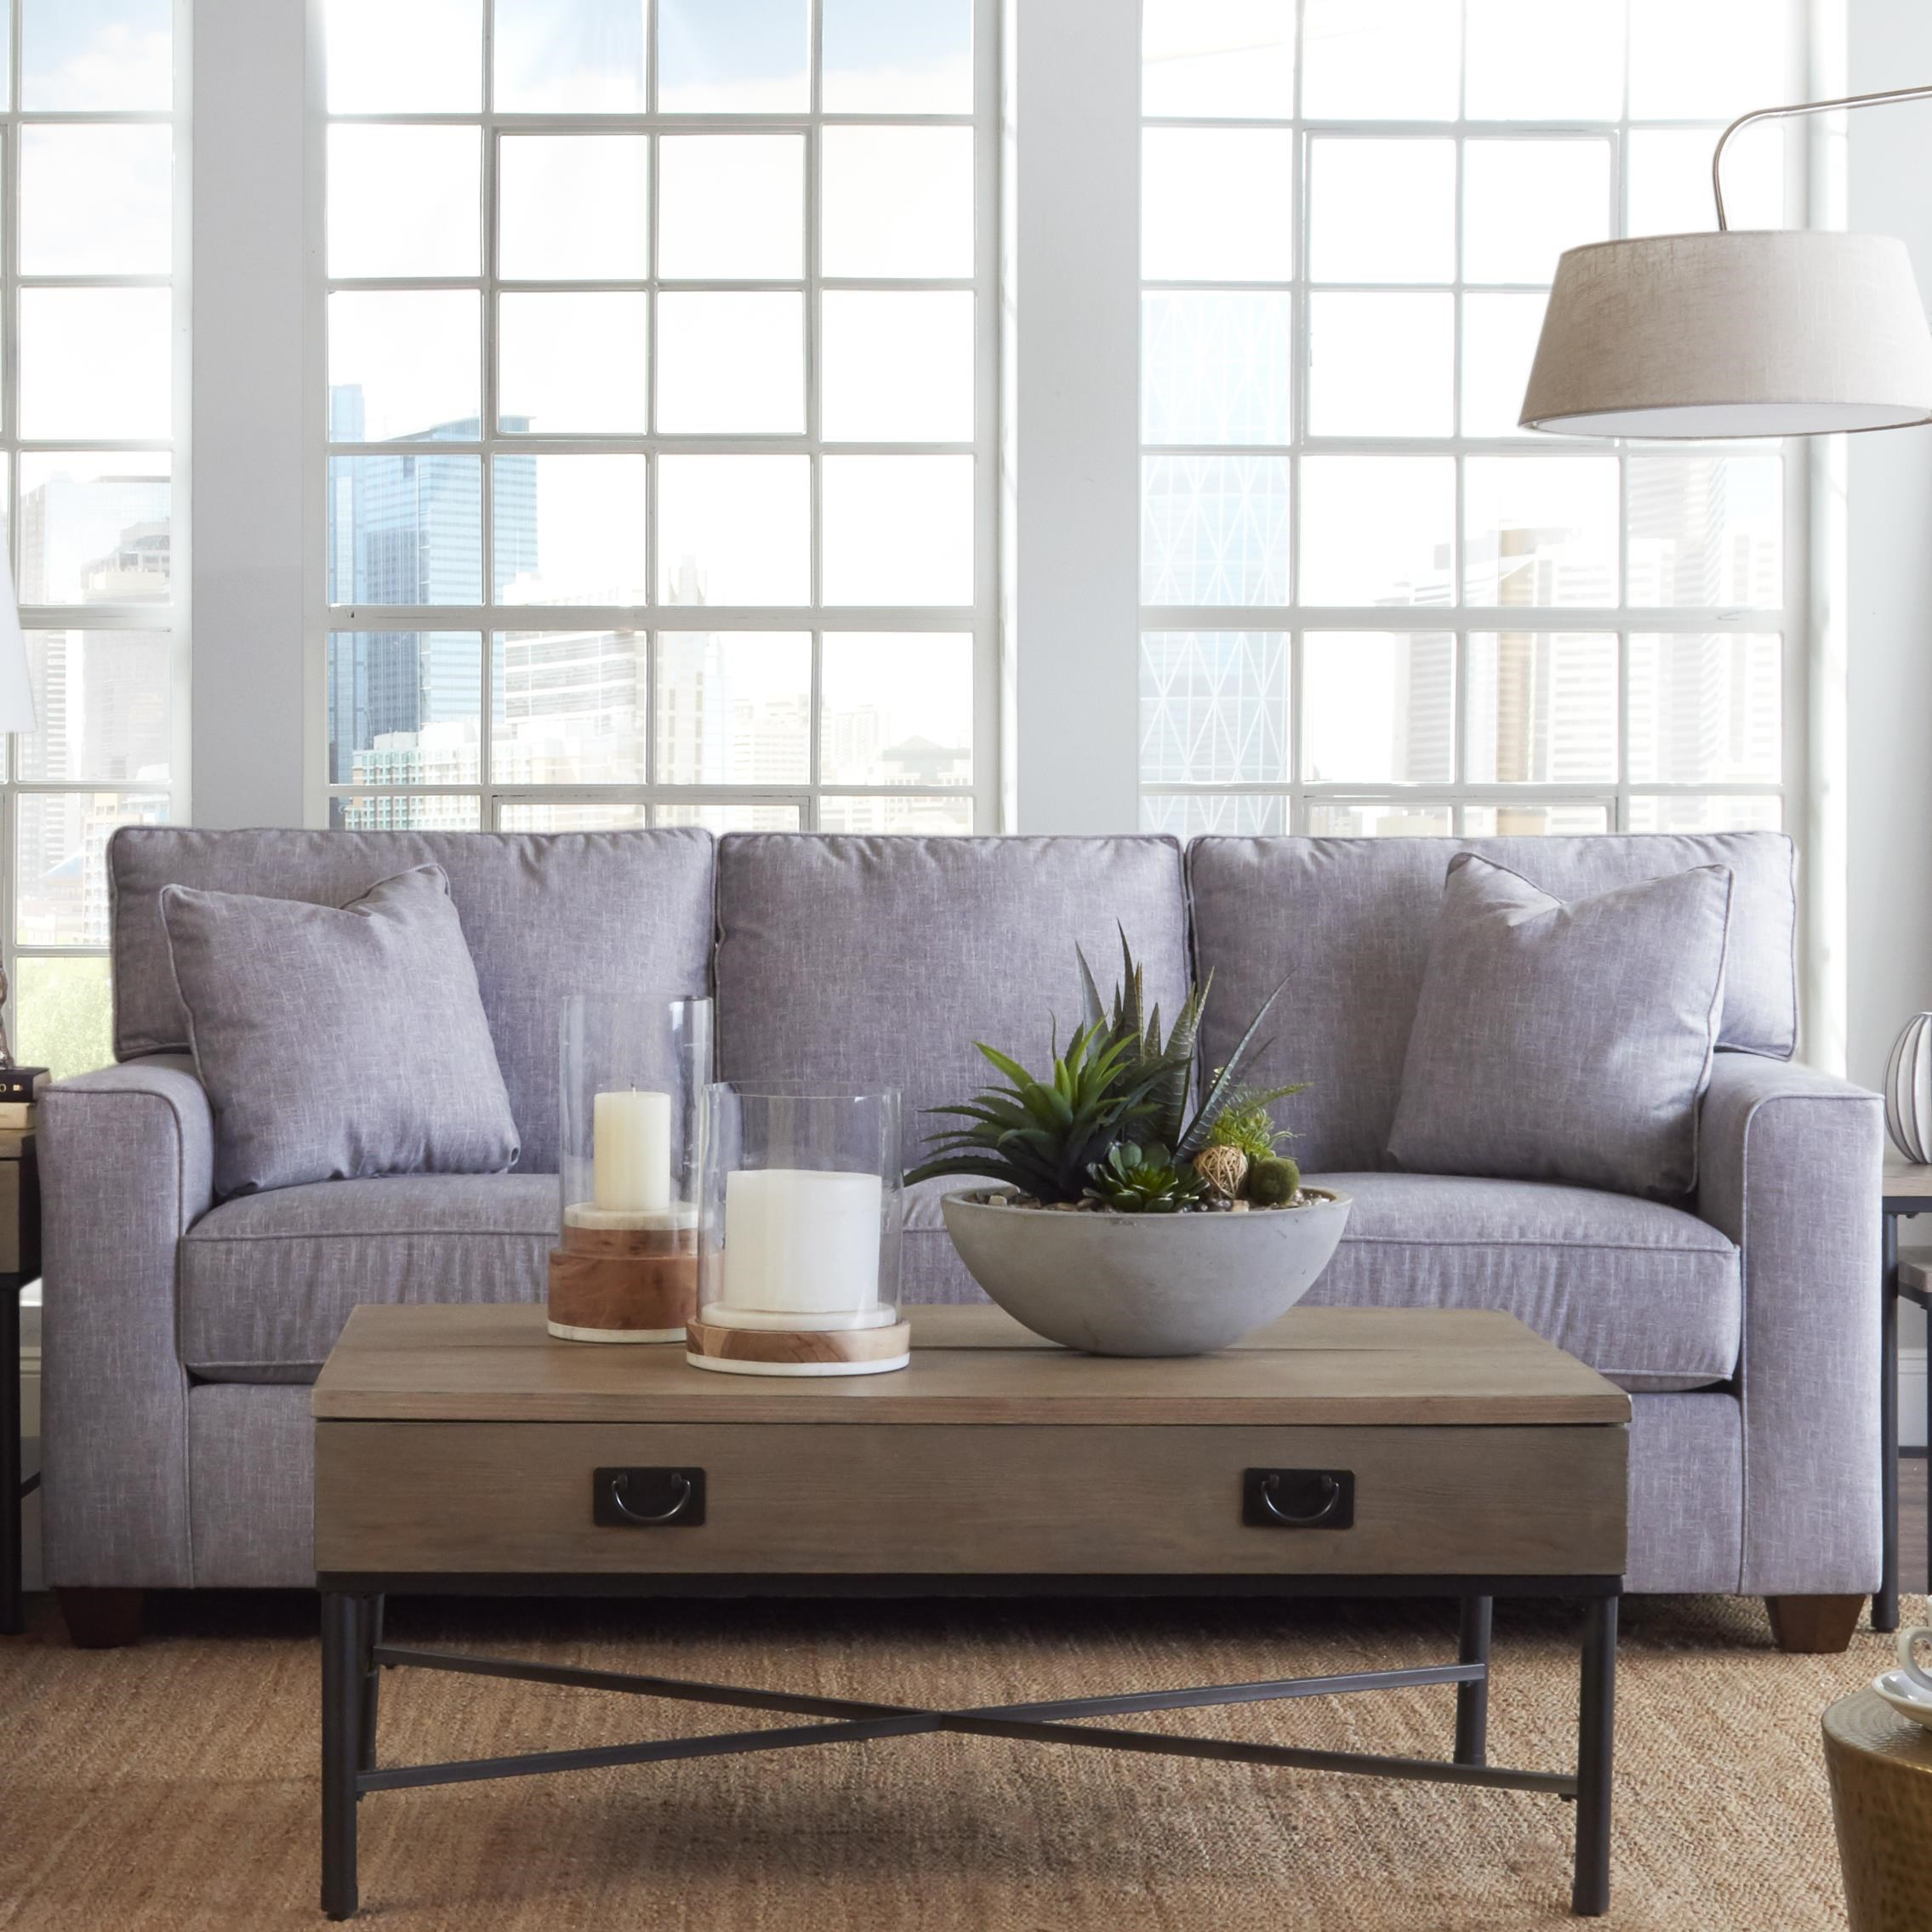 Nolan Queen Dreamquest Sleeper Sofa by Klaussner at Northeast Factory Direct